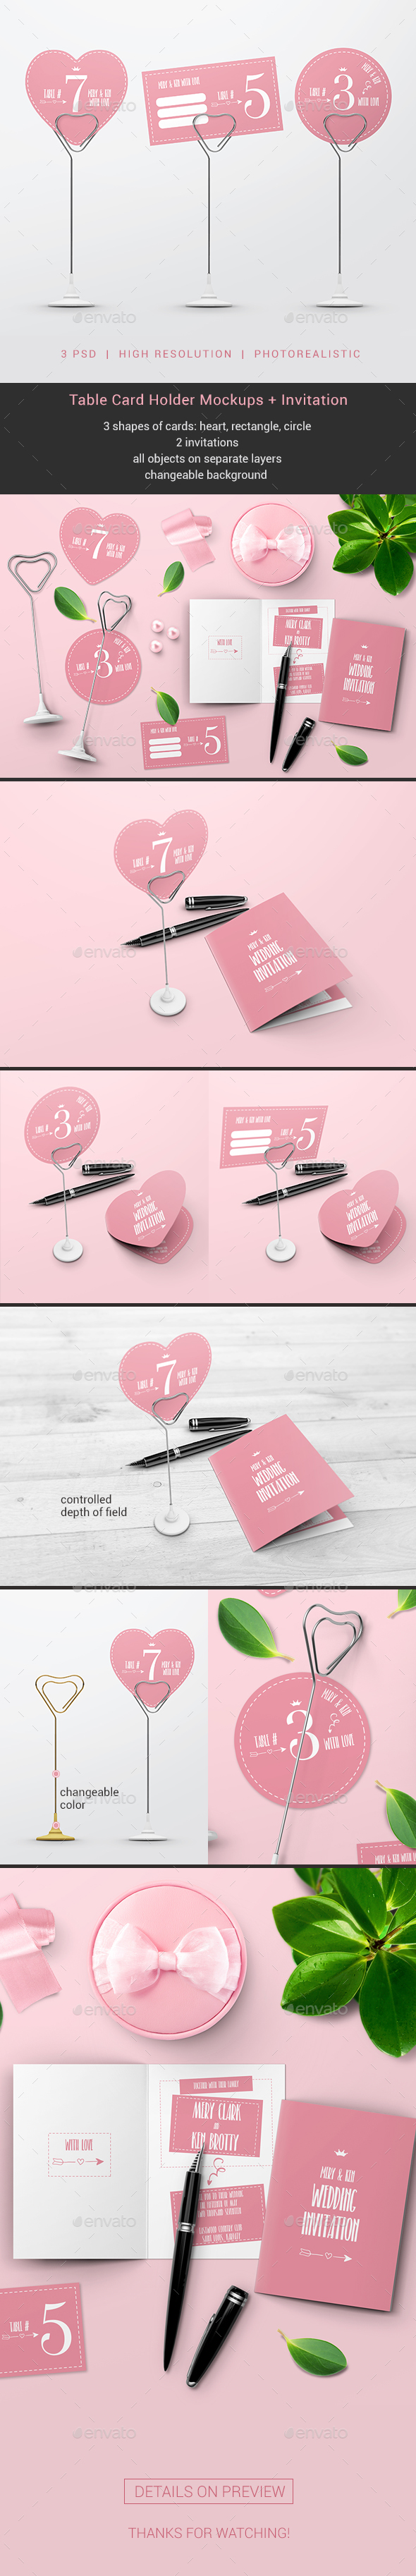 Table Card Holder Mockups - Miscellaneous Print